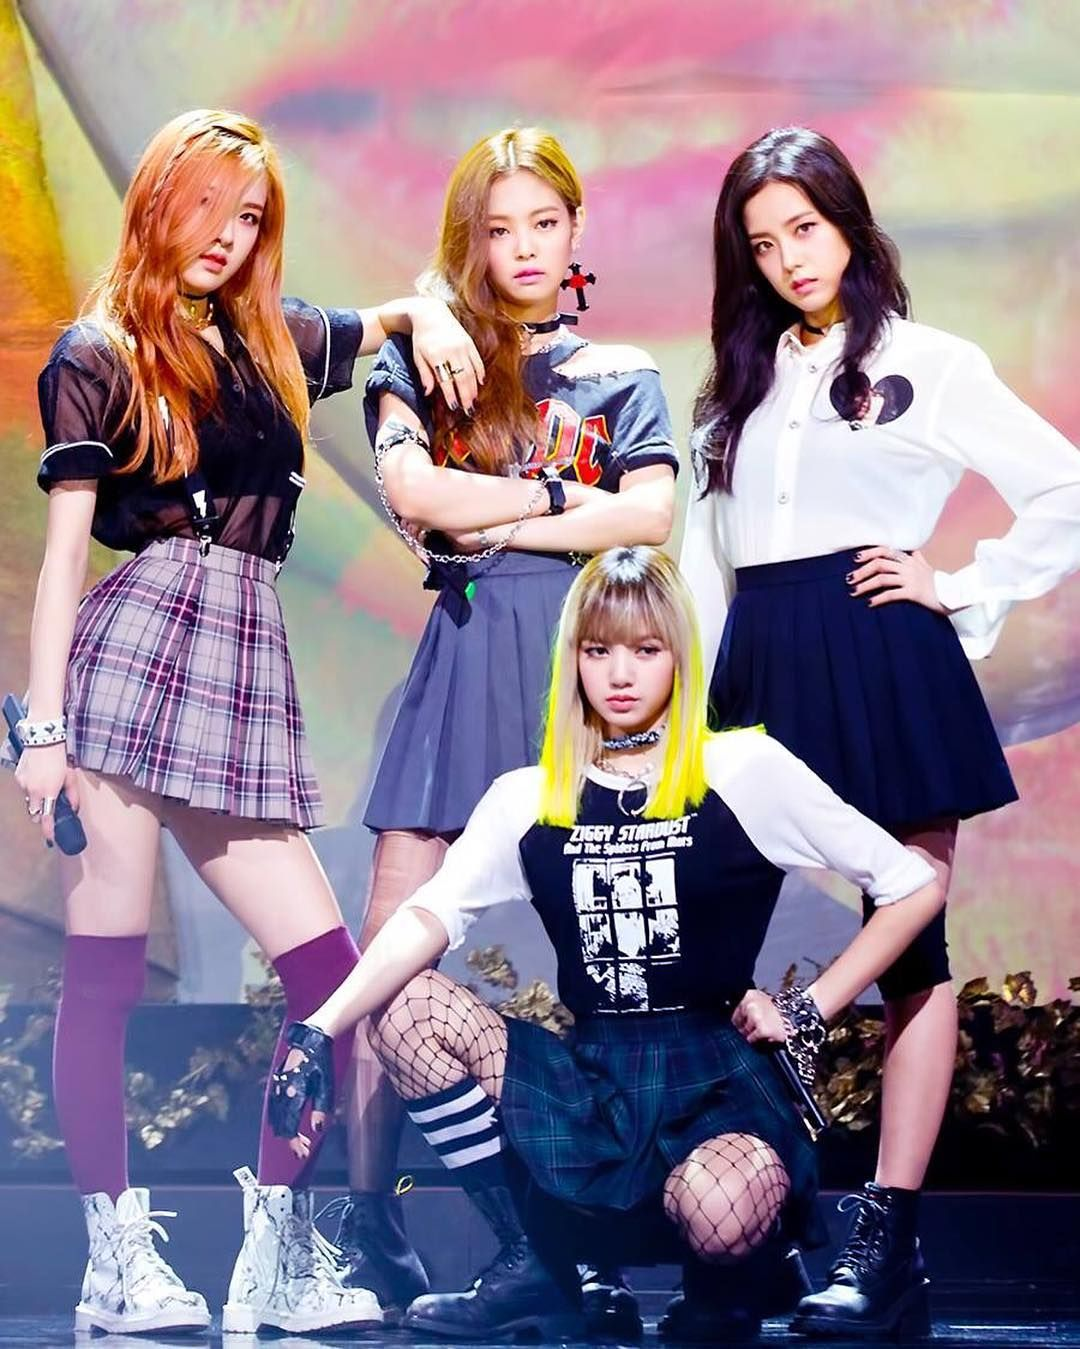 Blackpink Wallpaper 2016: Your Favorite Pose/style? #BLACKPINK